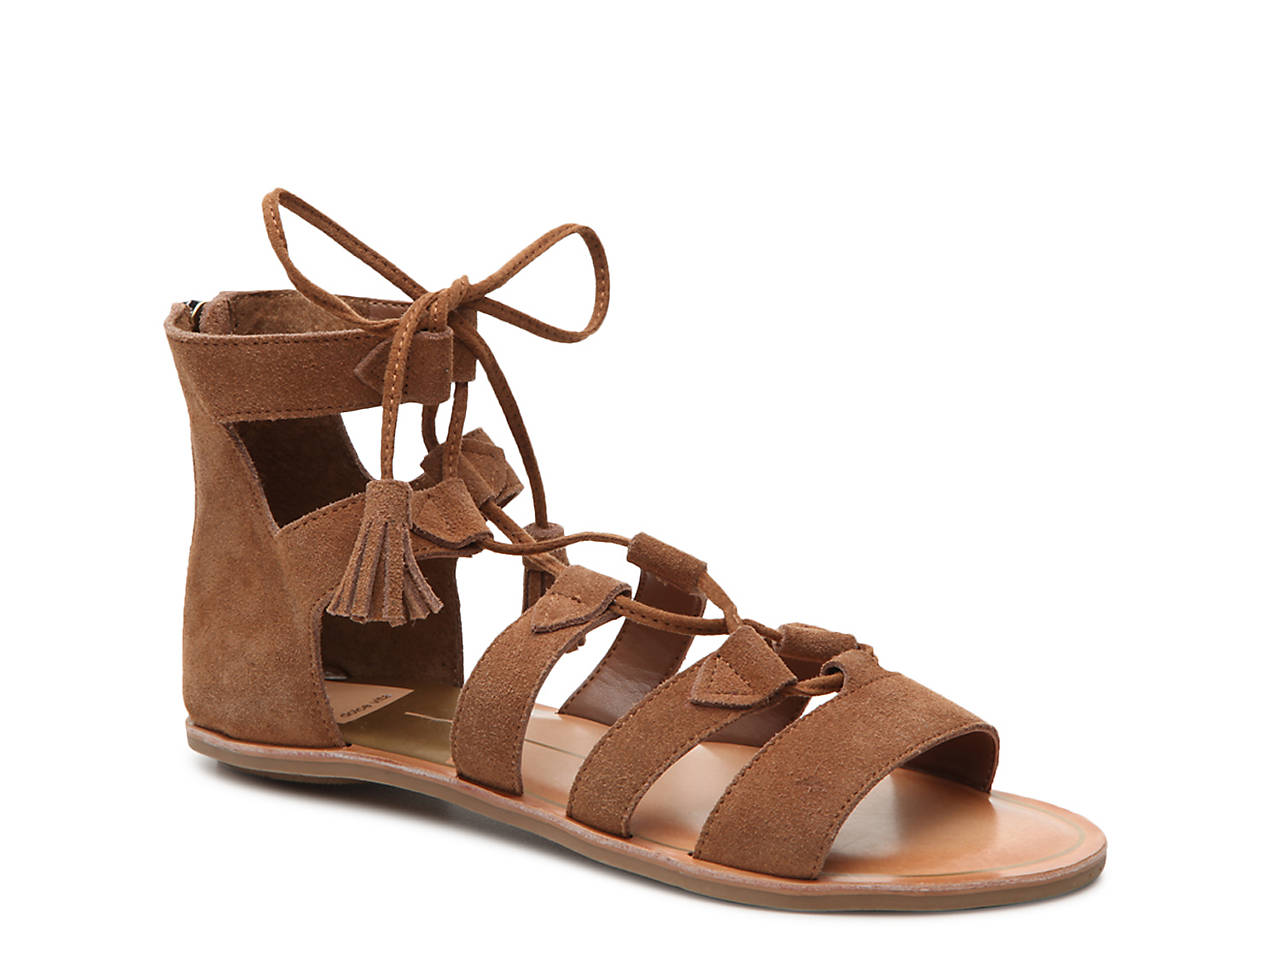 80db67fd0 Dolce Vita Valli Gladiator Sandal Women s Shoes